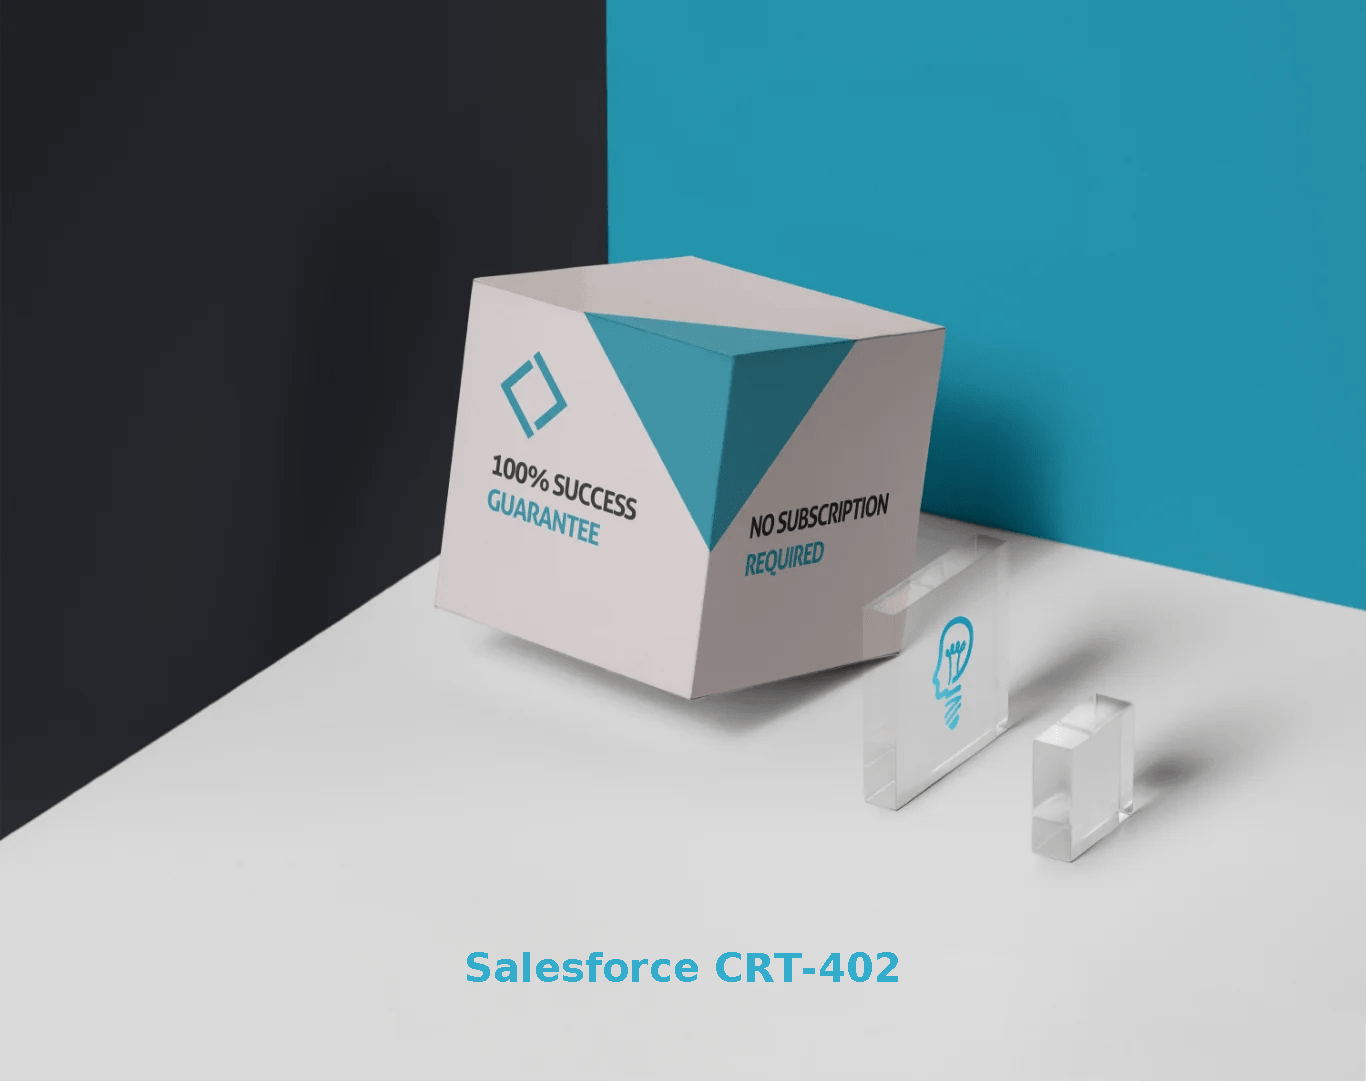 Salesforce CRT-402 Exams